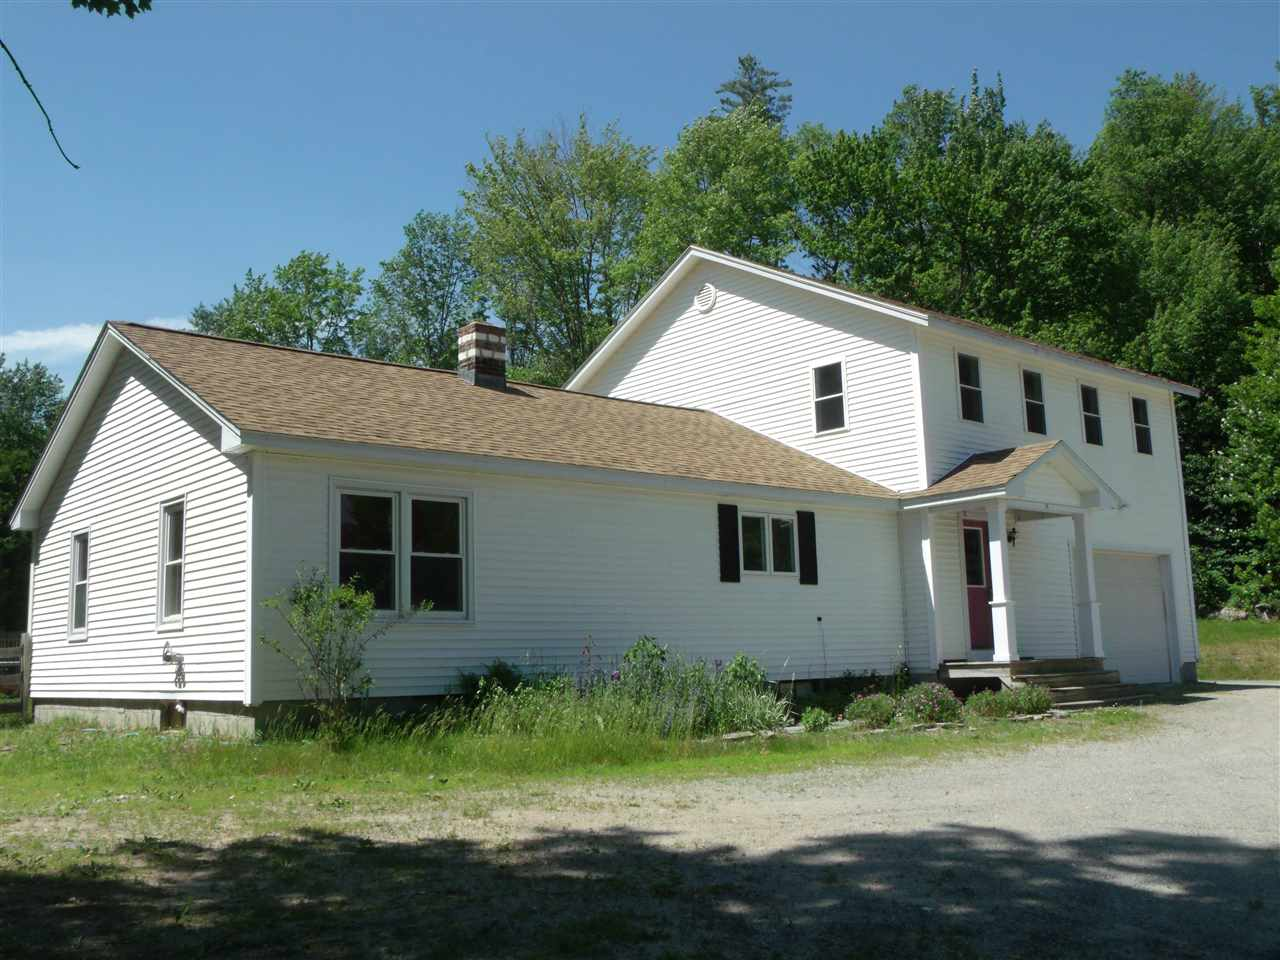 114 Route 106, Springfield, VT 05156